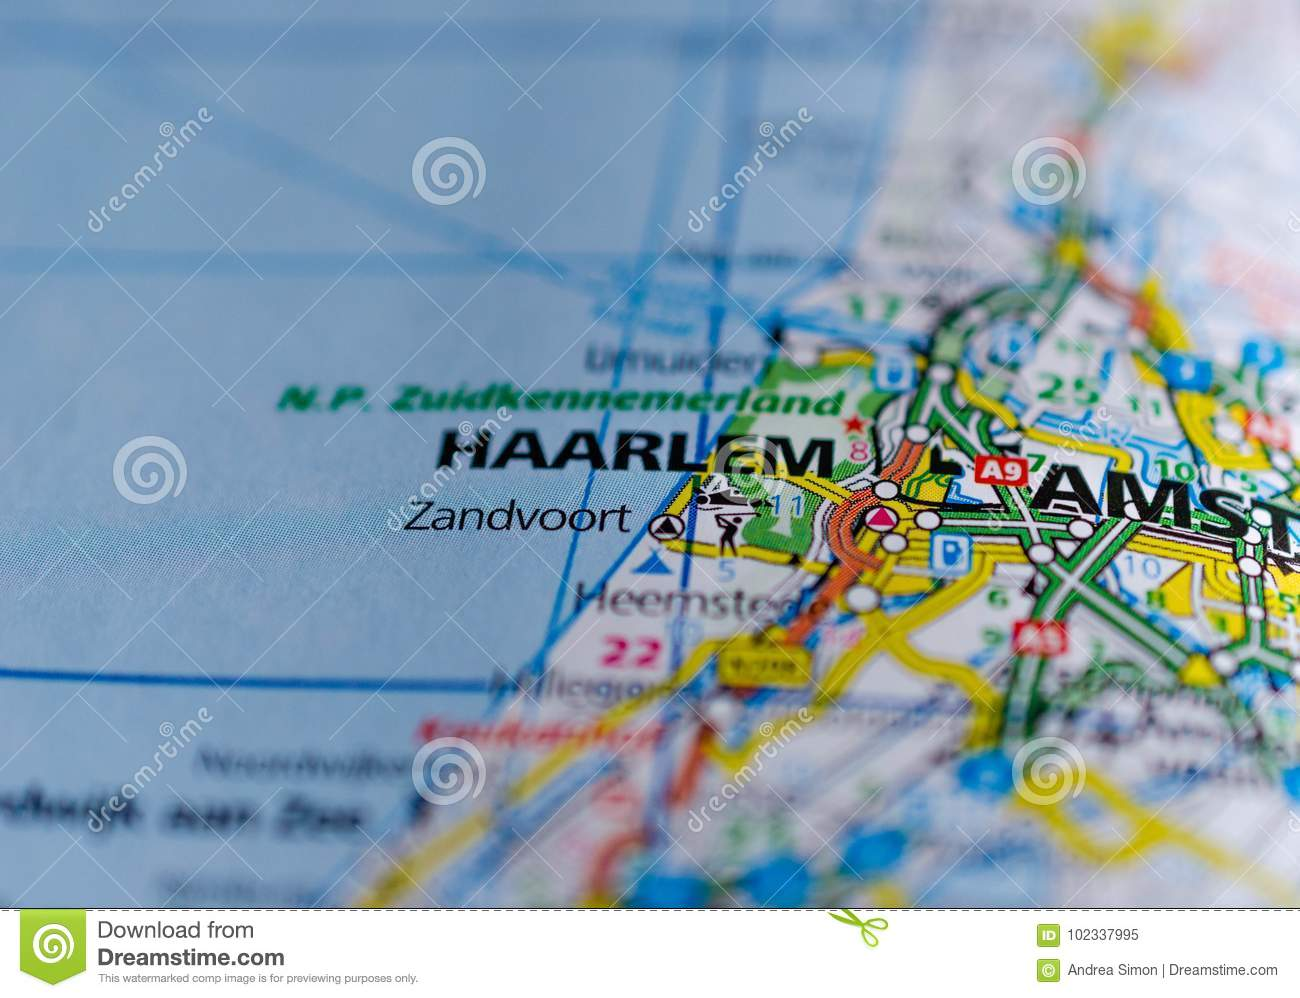 Haarlem on map stock image. Image of close, amsterdam - 102337995